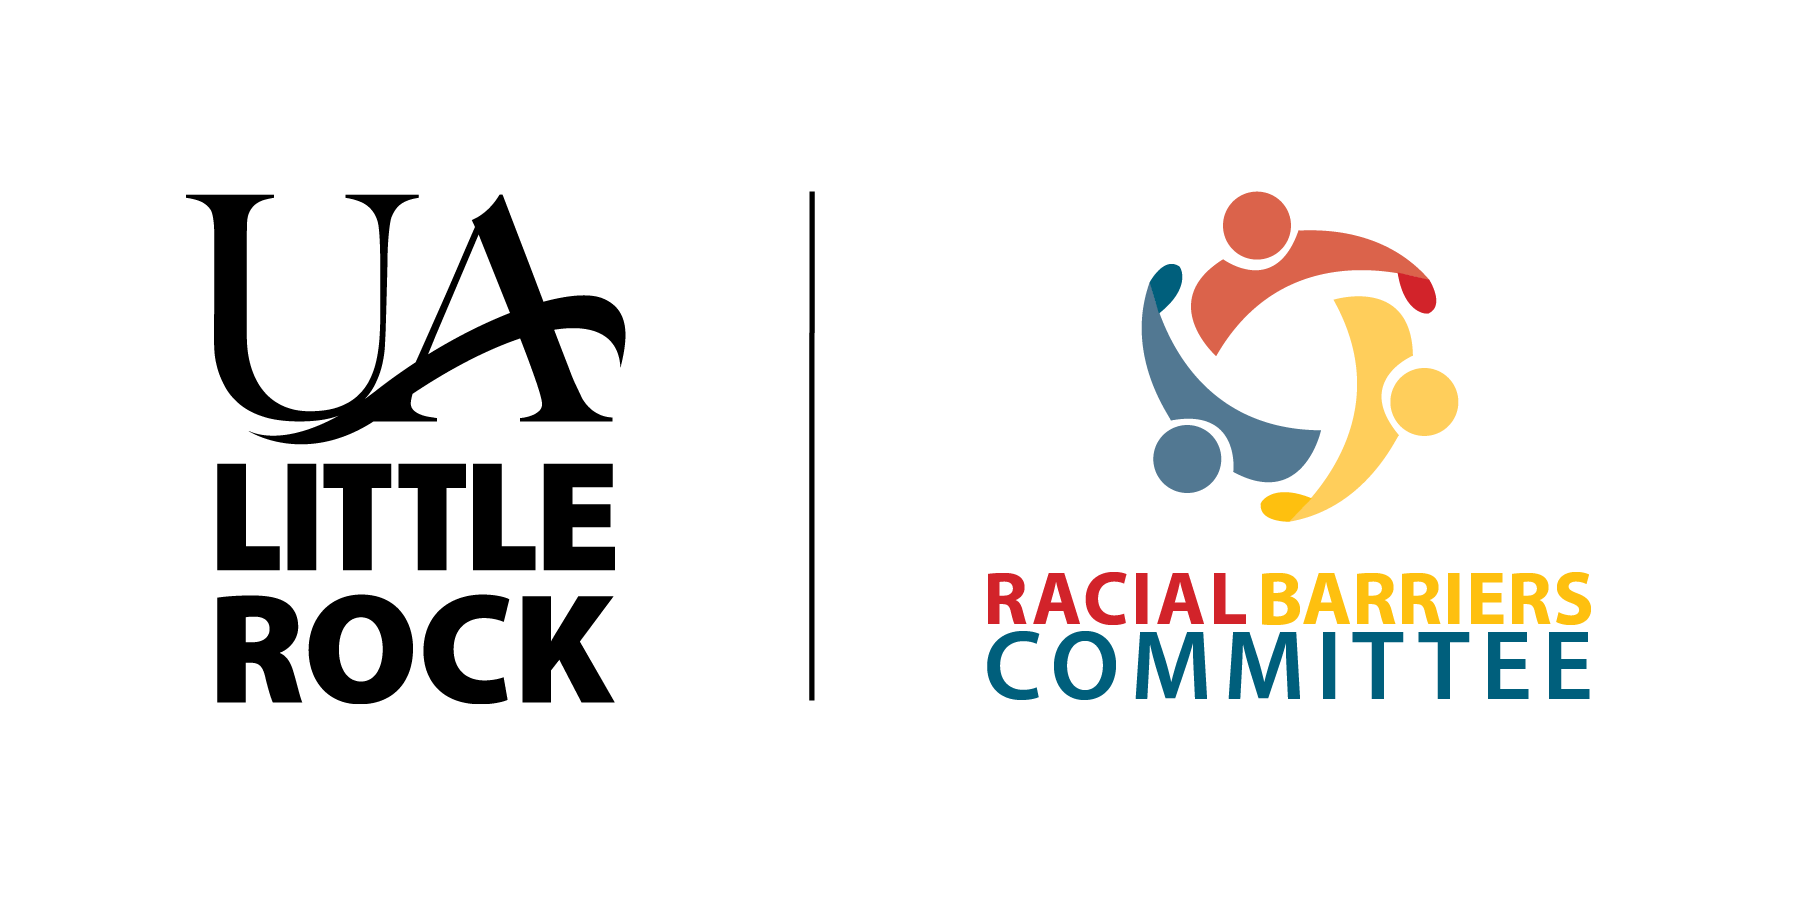 The Racial Barriers Committee will hold a meeting on Oct. 14.